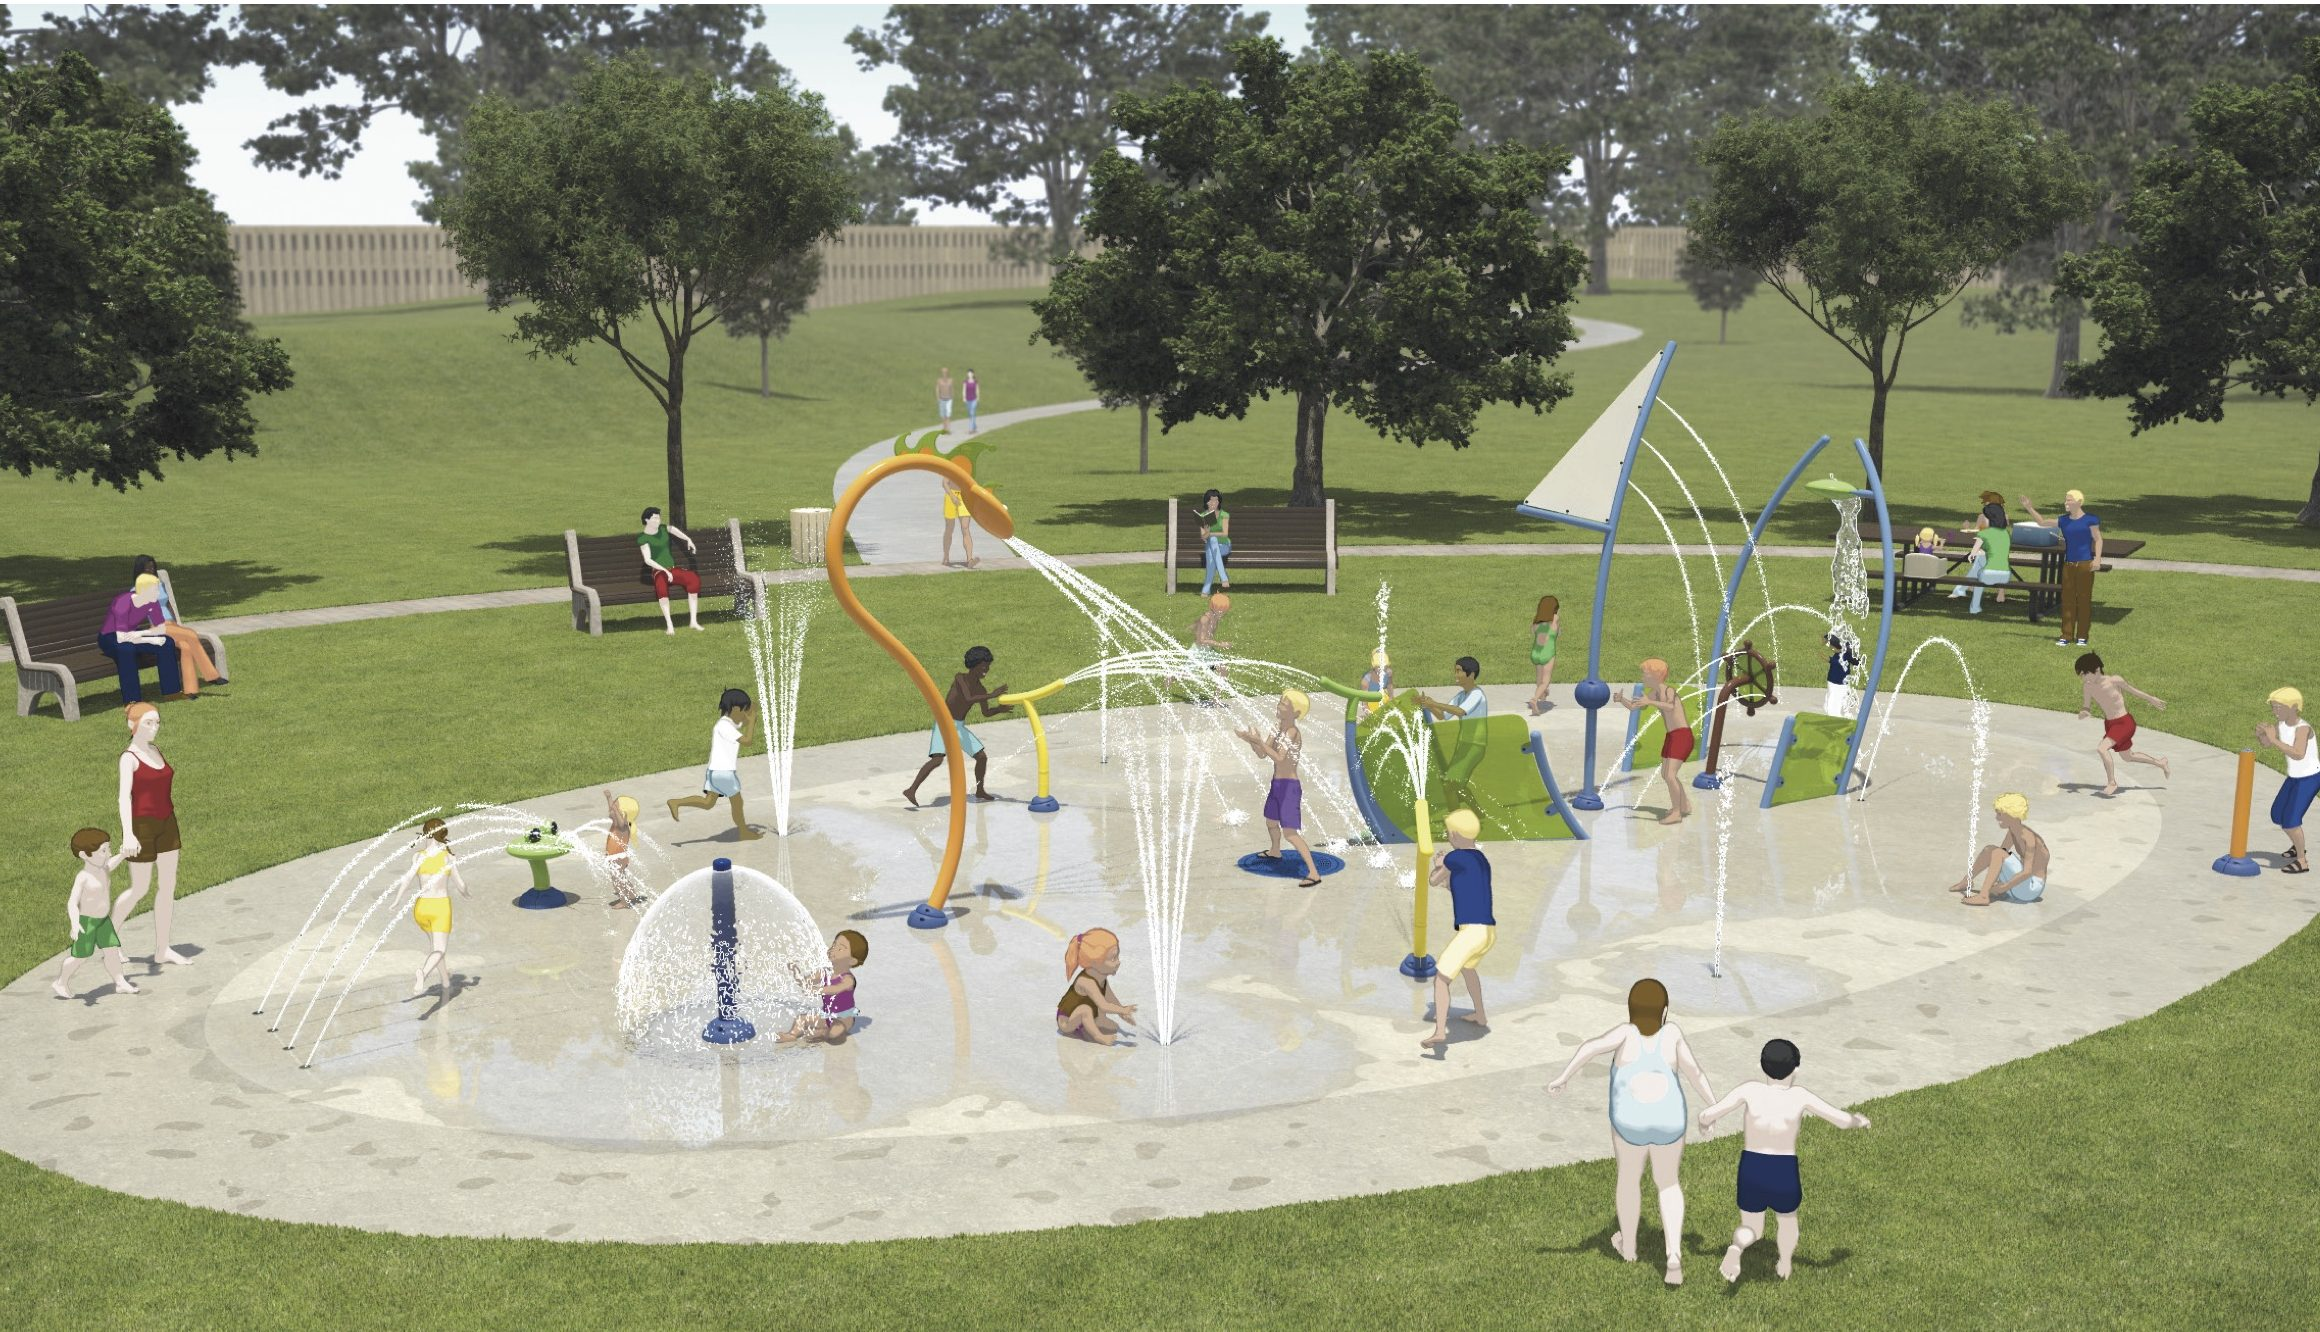 Design plans for the splash pad in Picton,Ontario. Photo provided by Susan Quaiff,co-chair of splash pad committee.